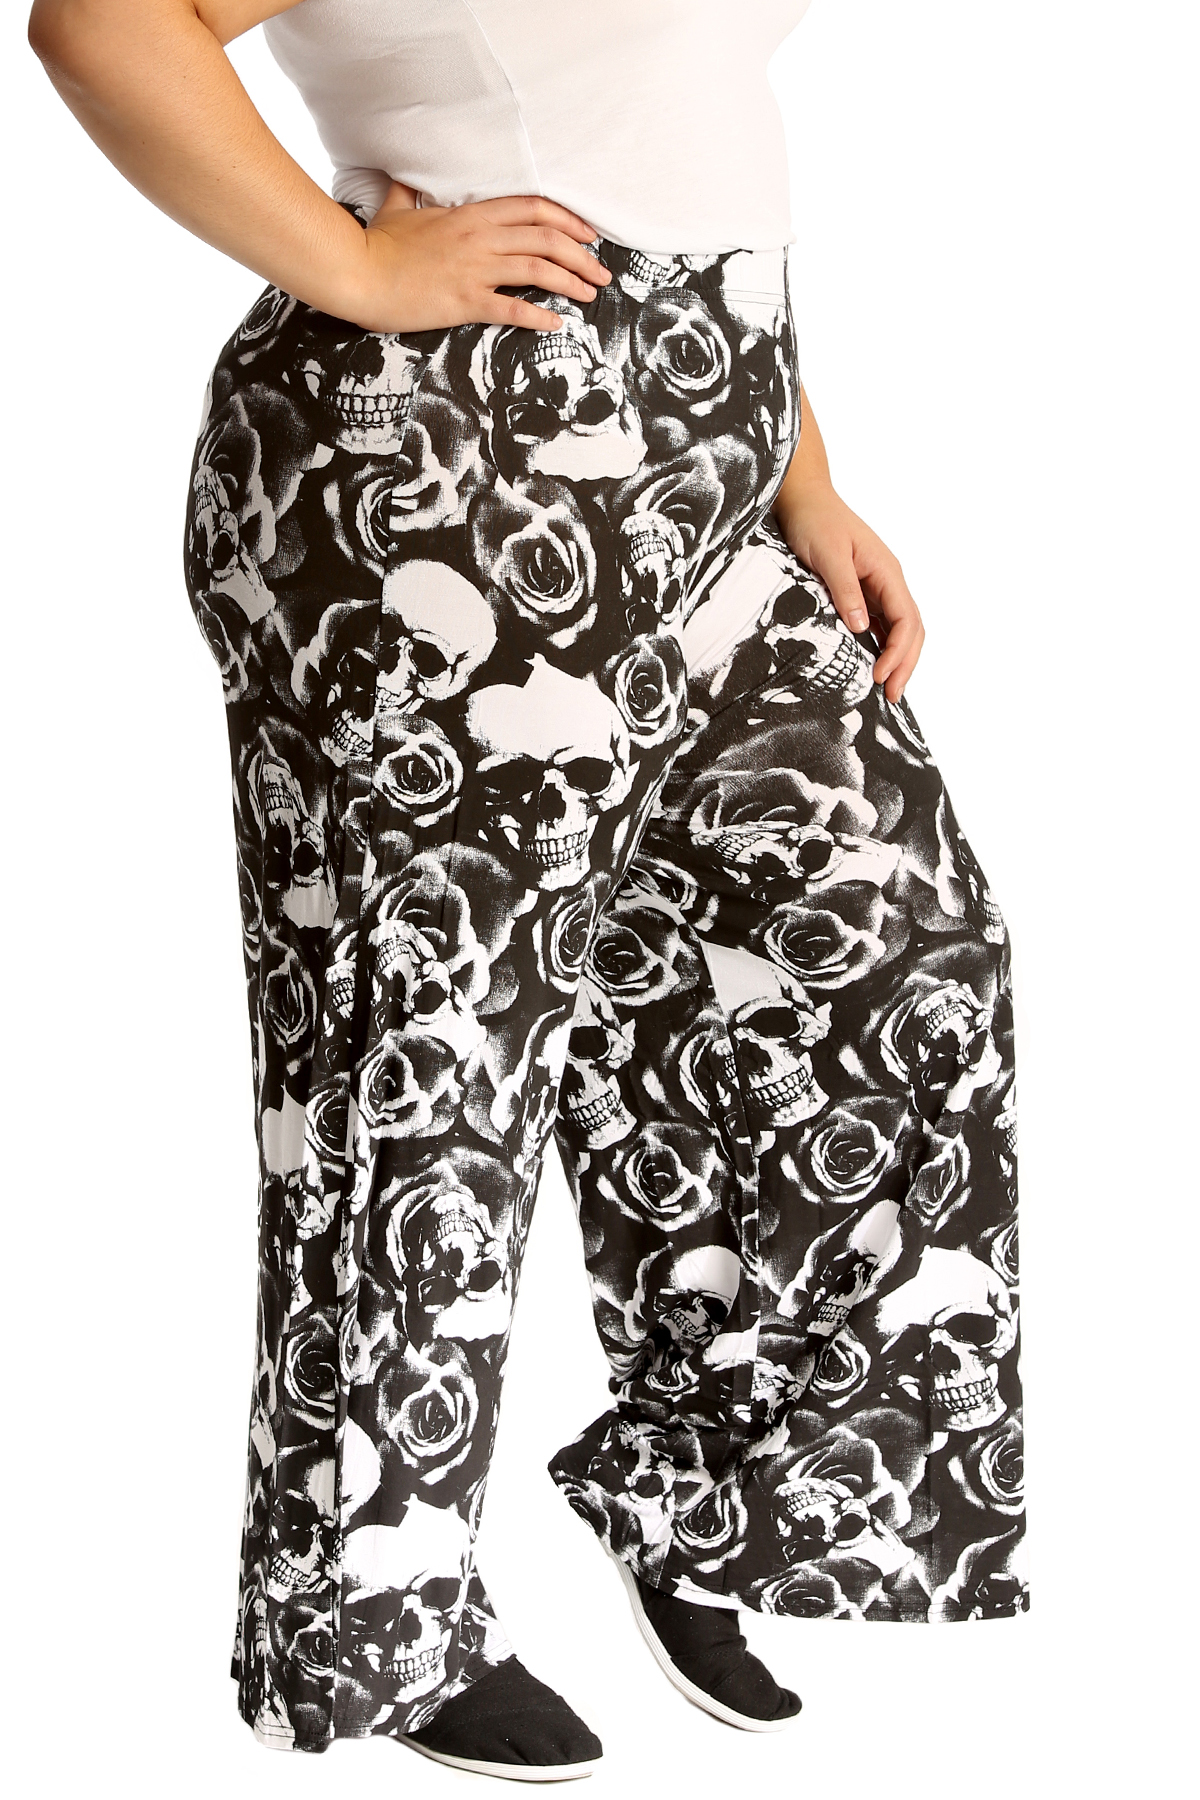 e8d579bd182 Details about New Womens Plus Size Palazzo Trouser Ladies Skull   Roses  Print Gothic Bottoms